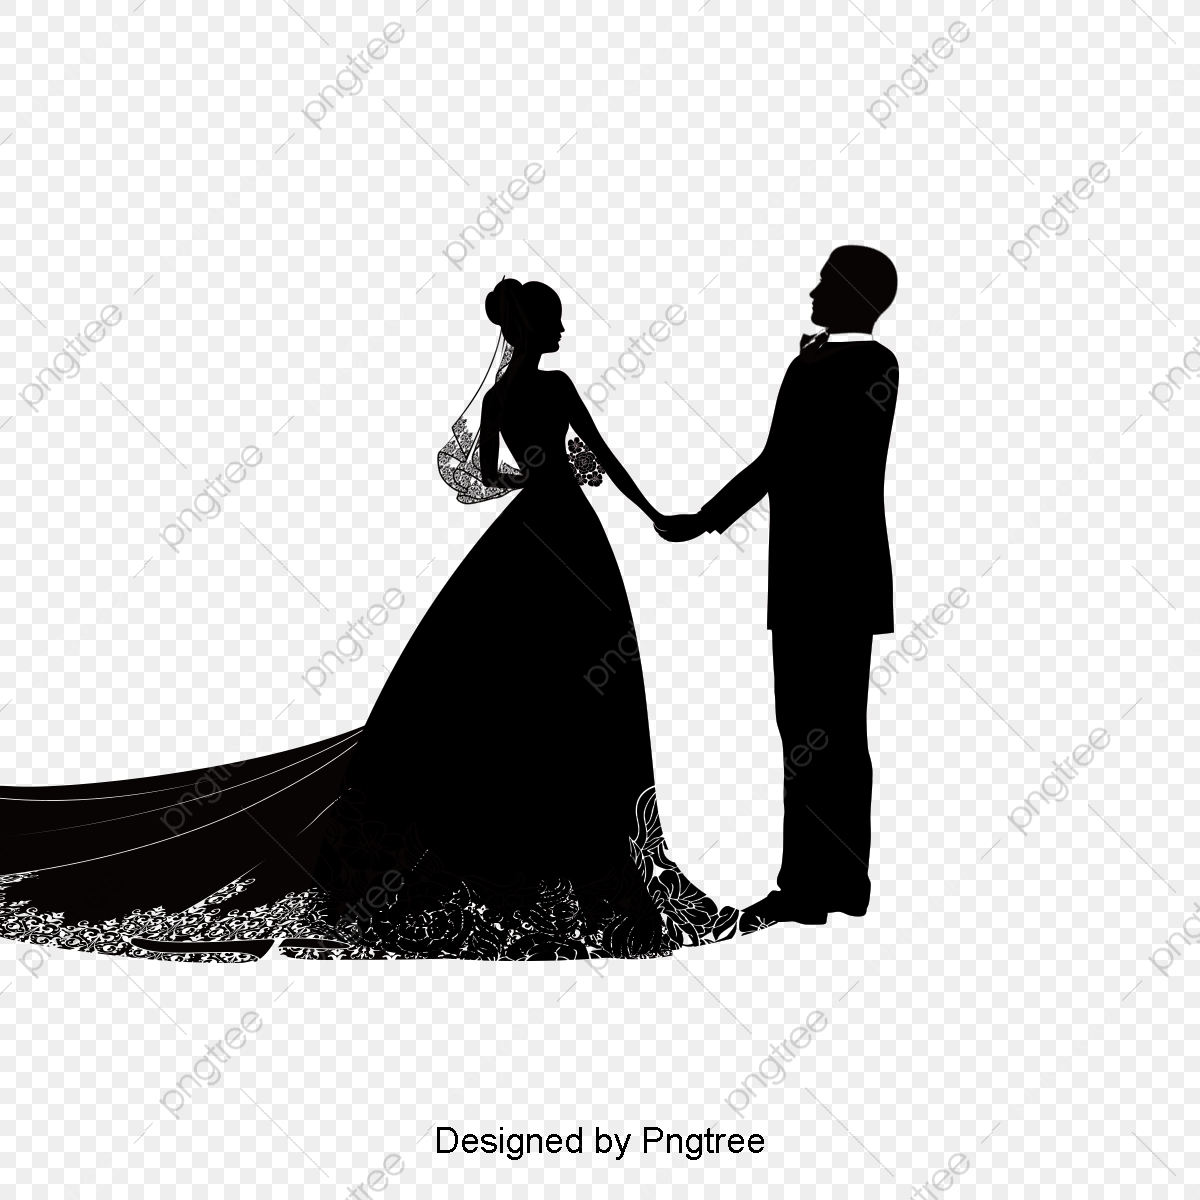 Creative Wedding Silhouette, Bride And Groom, Wedding, Marry PNG.